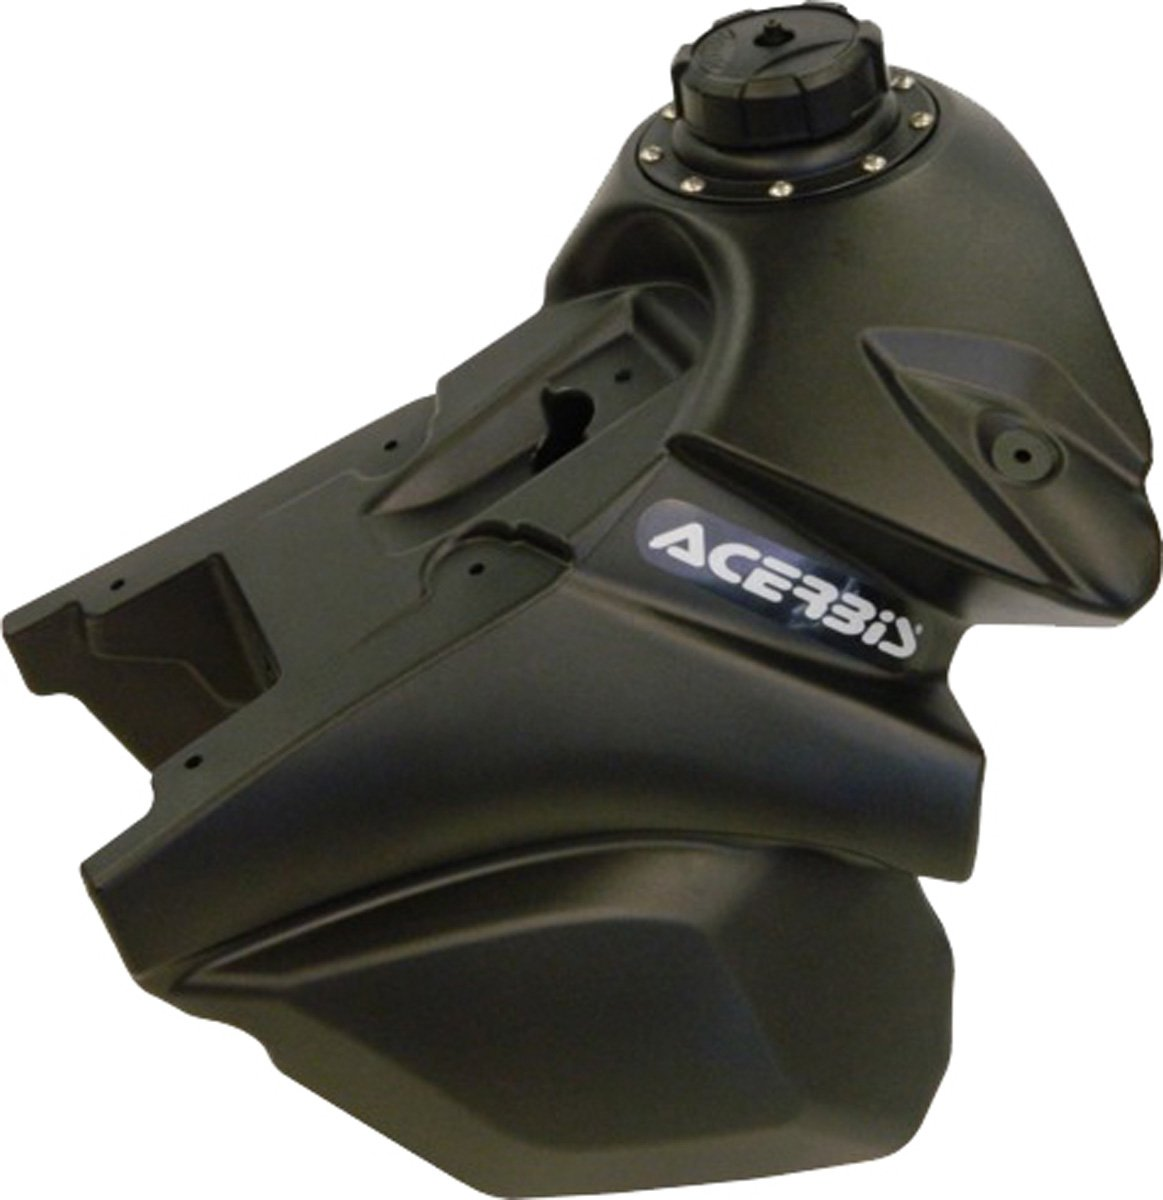 Acerbis Fuel Tank - Black - 3.2 Gal., Color: Black 2250310001